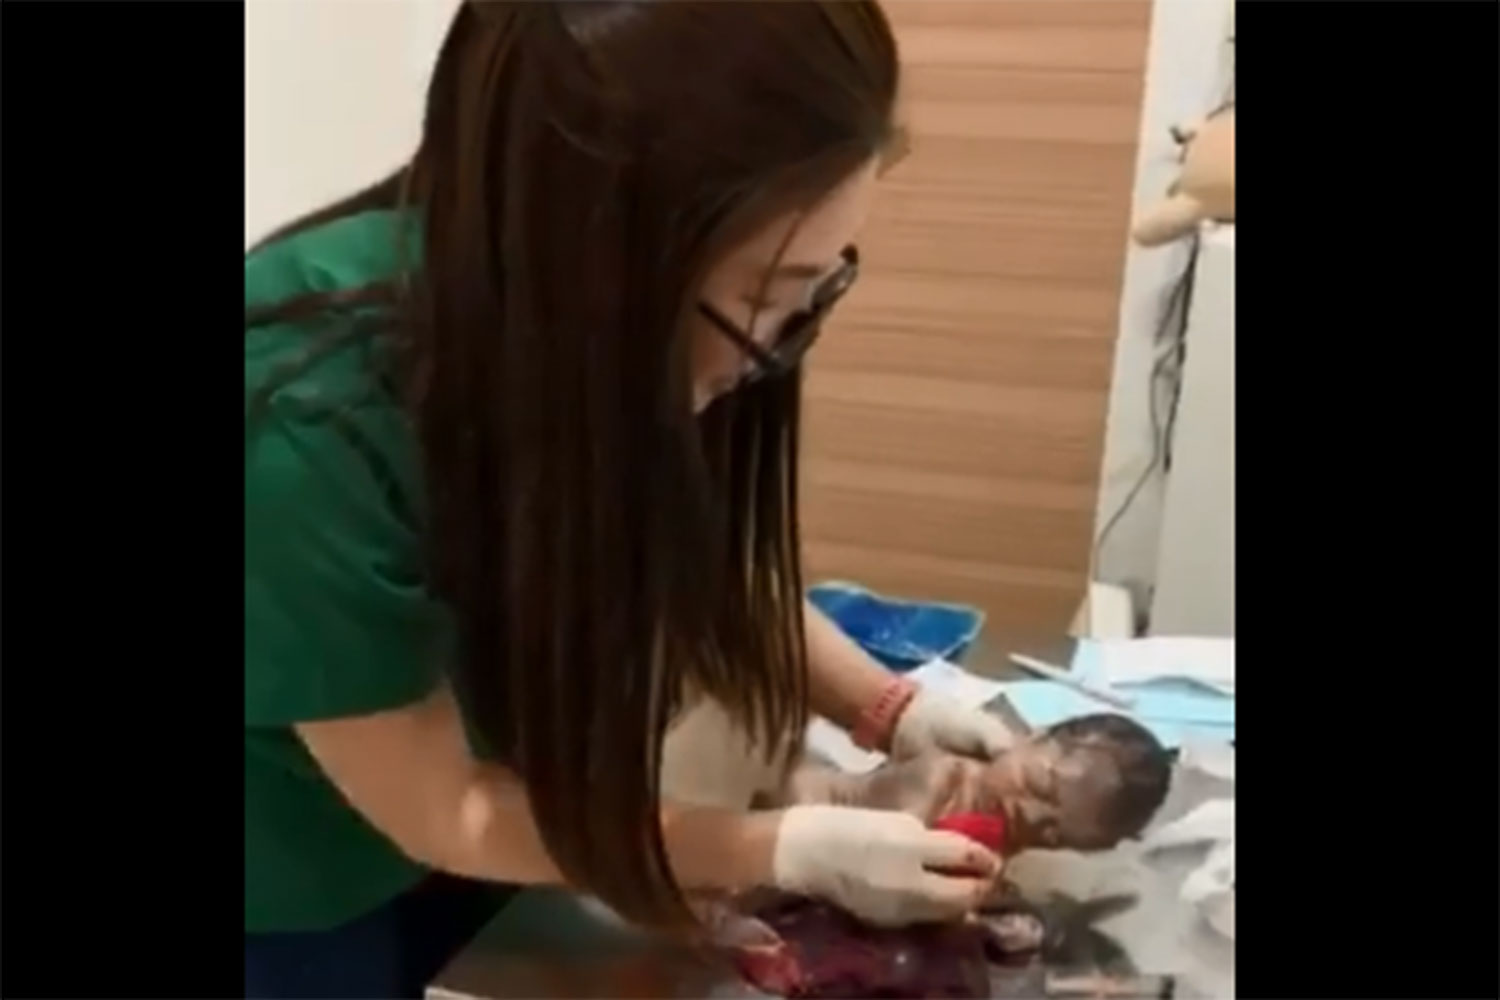 """Vet Waree """"Dr Mon Pet Angel'' Limrungsukho, 34, saves the life of a baby boy who was born prematurely to a Myanmar construction worker on a side street not far from her clinic in Bangkok's Taling Chan district on Sunday night. (Capture from a clip taken by Min K Wg Facebook page)"""